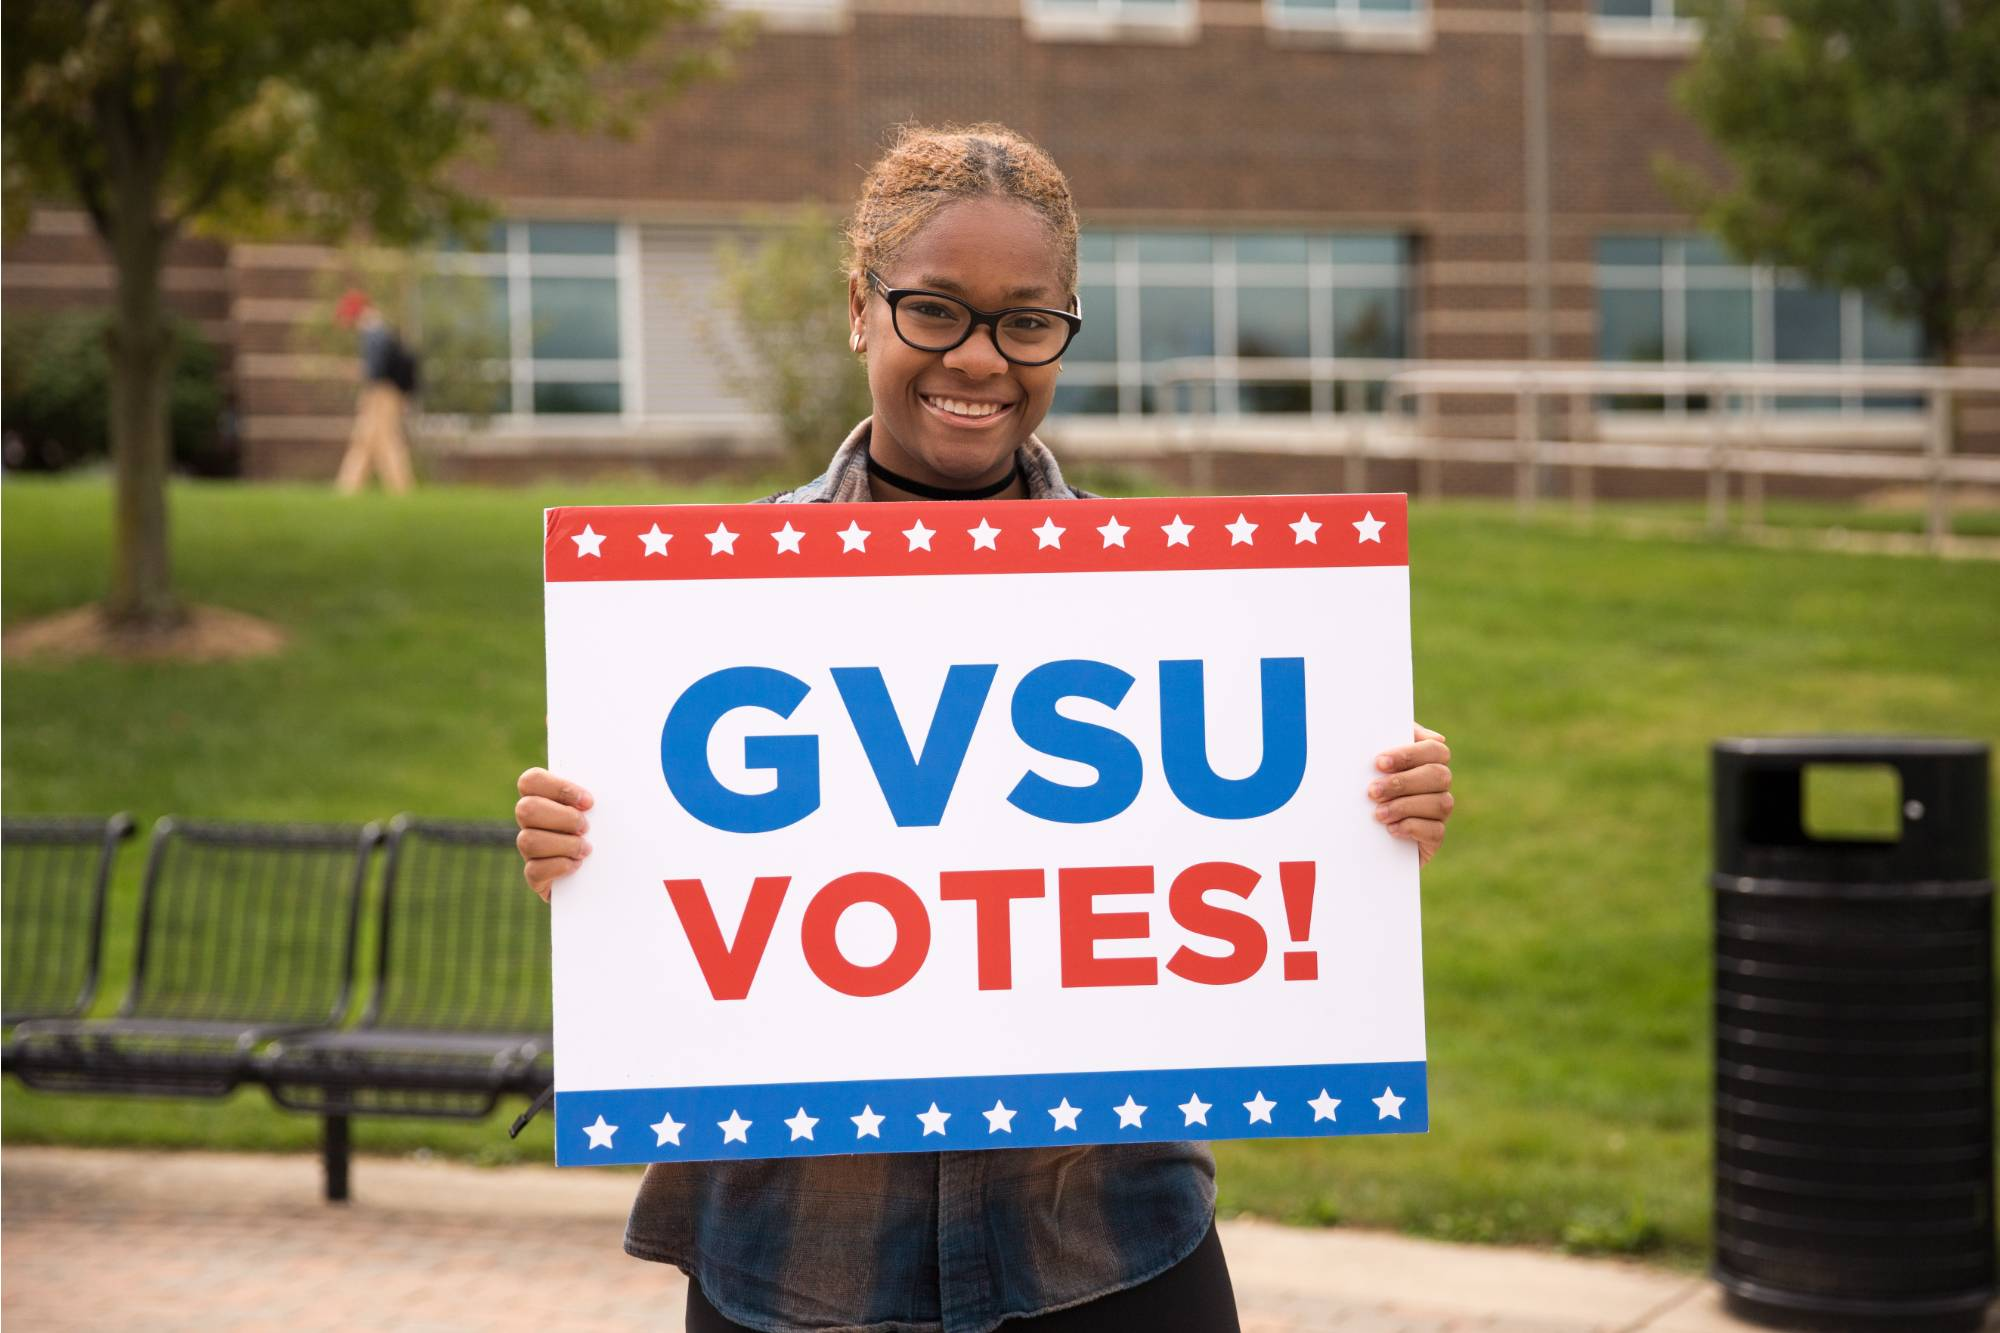 Girl holding up GVSU votes sign